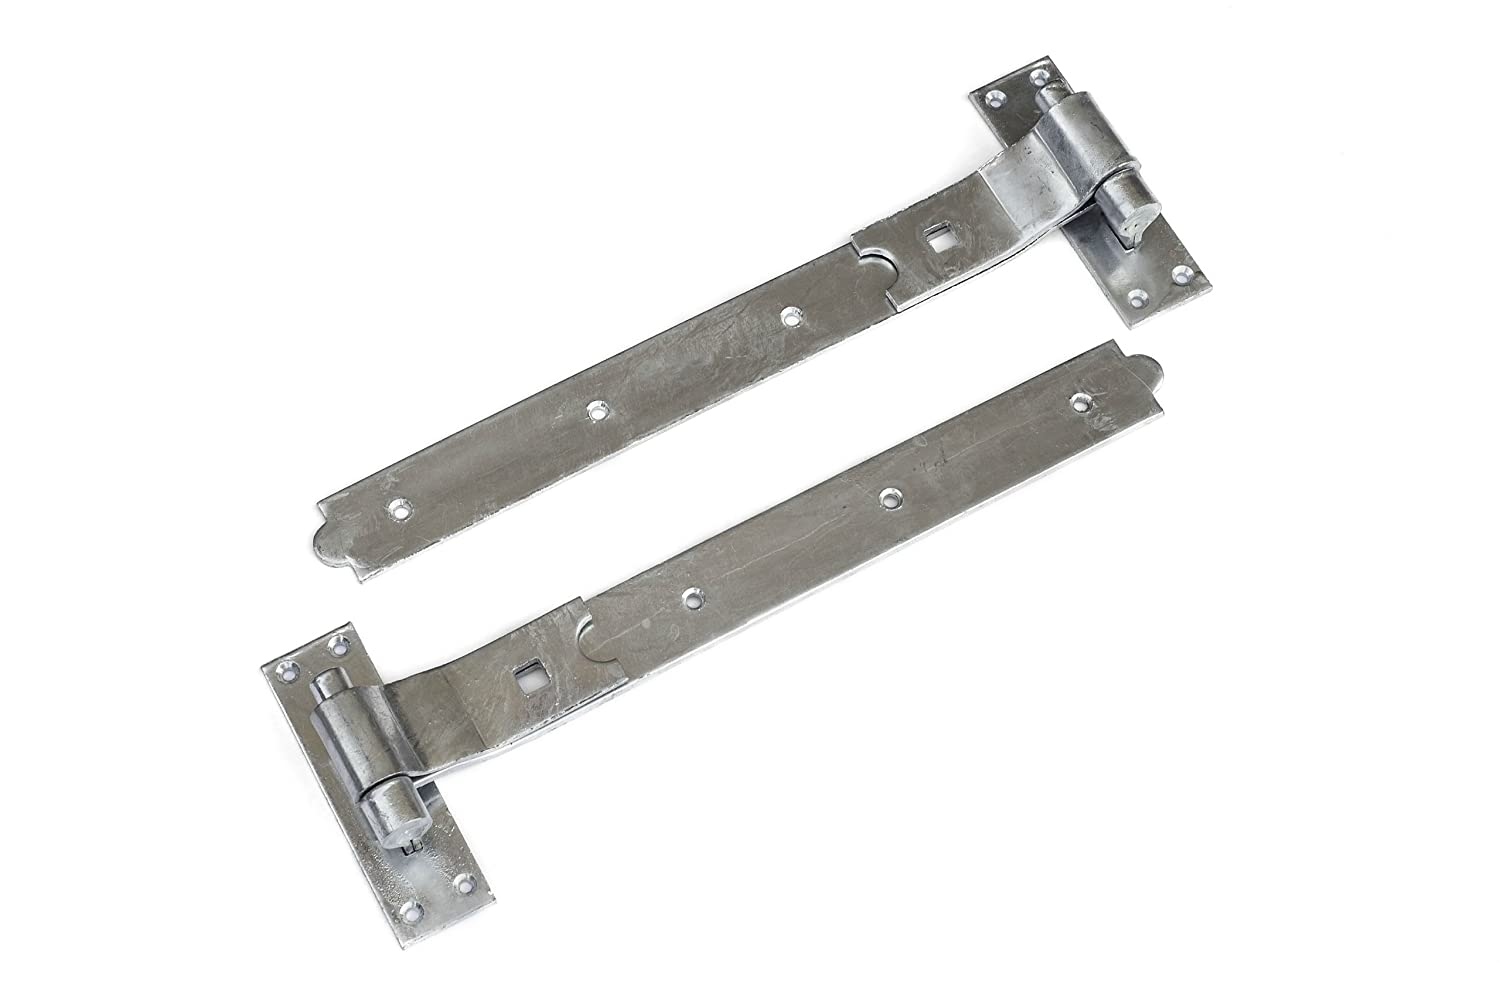 1st Fix South 1 Pair Of 600mm (24') Galvanized Cranked Hook And Band Gate/Door Hinges with no fixings